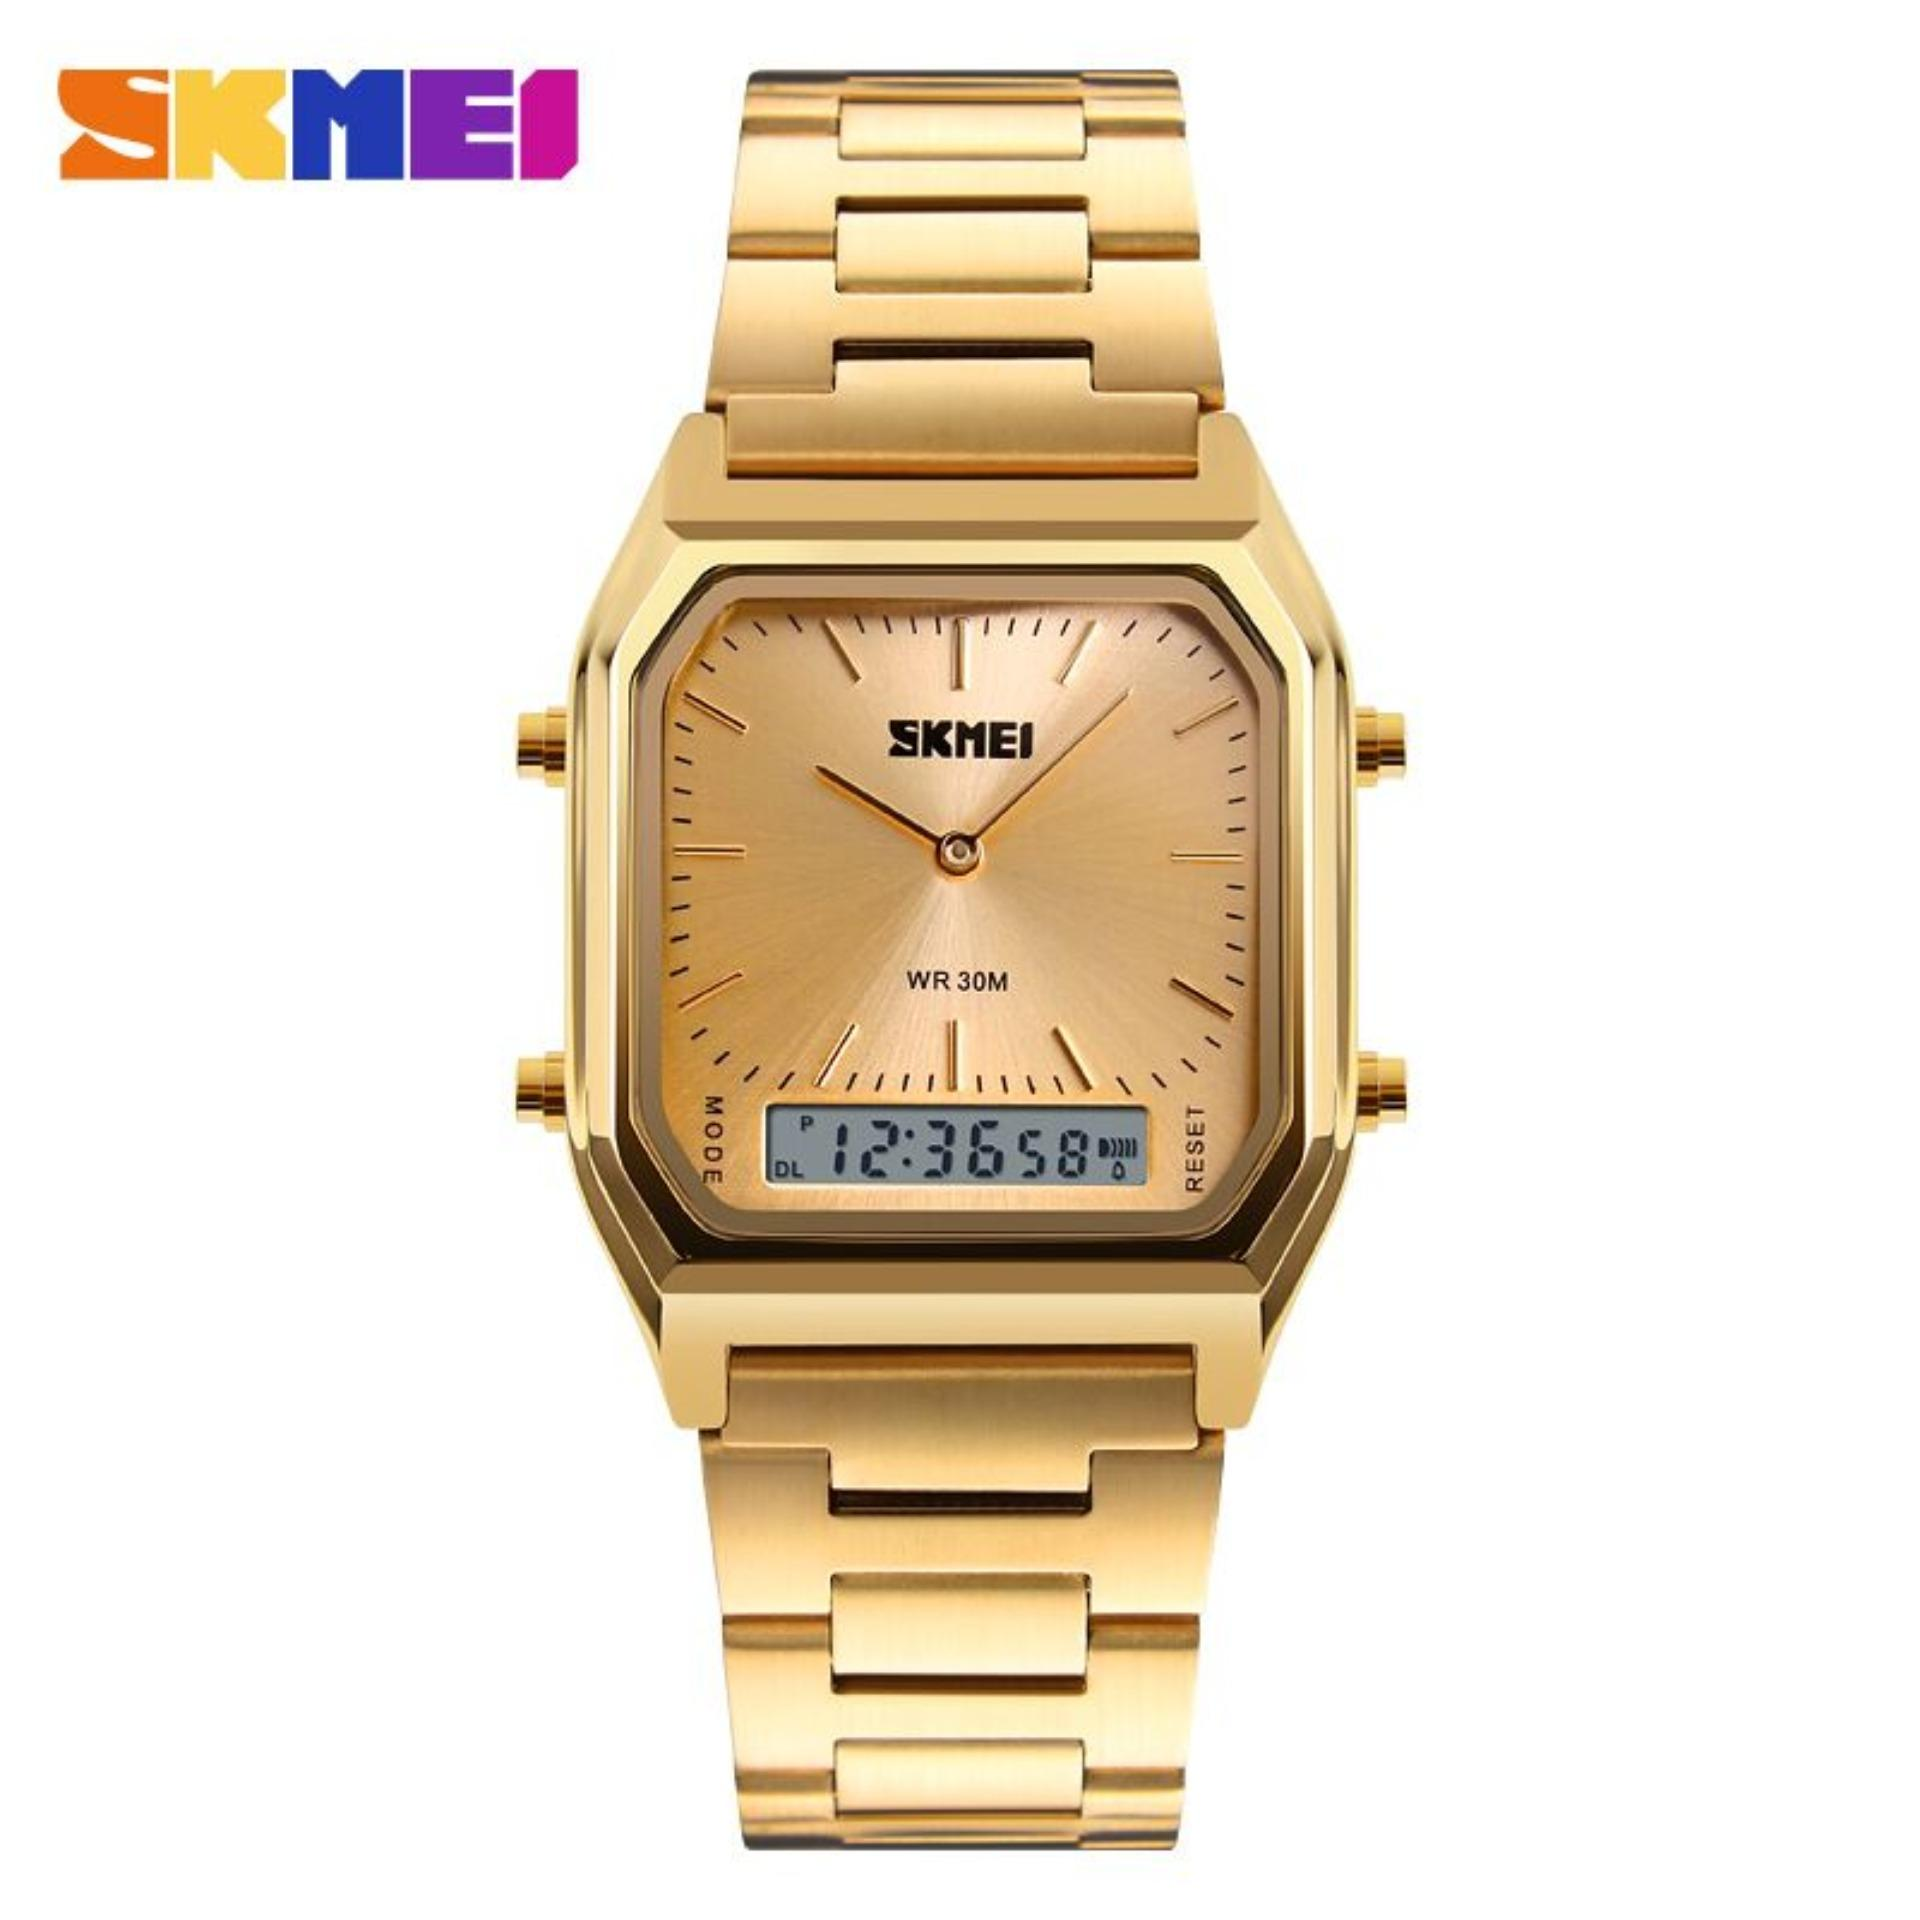 Jam Tangan SKMEI Casio Men Sport Watch Water Resist DG1220 Jam Tangan Pria Original Garansi - Gold